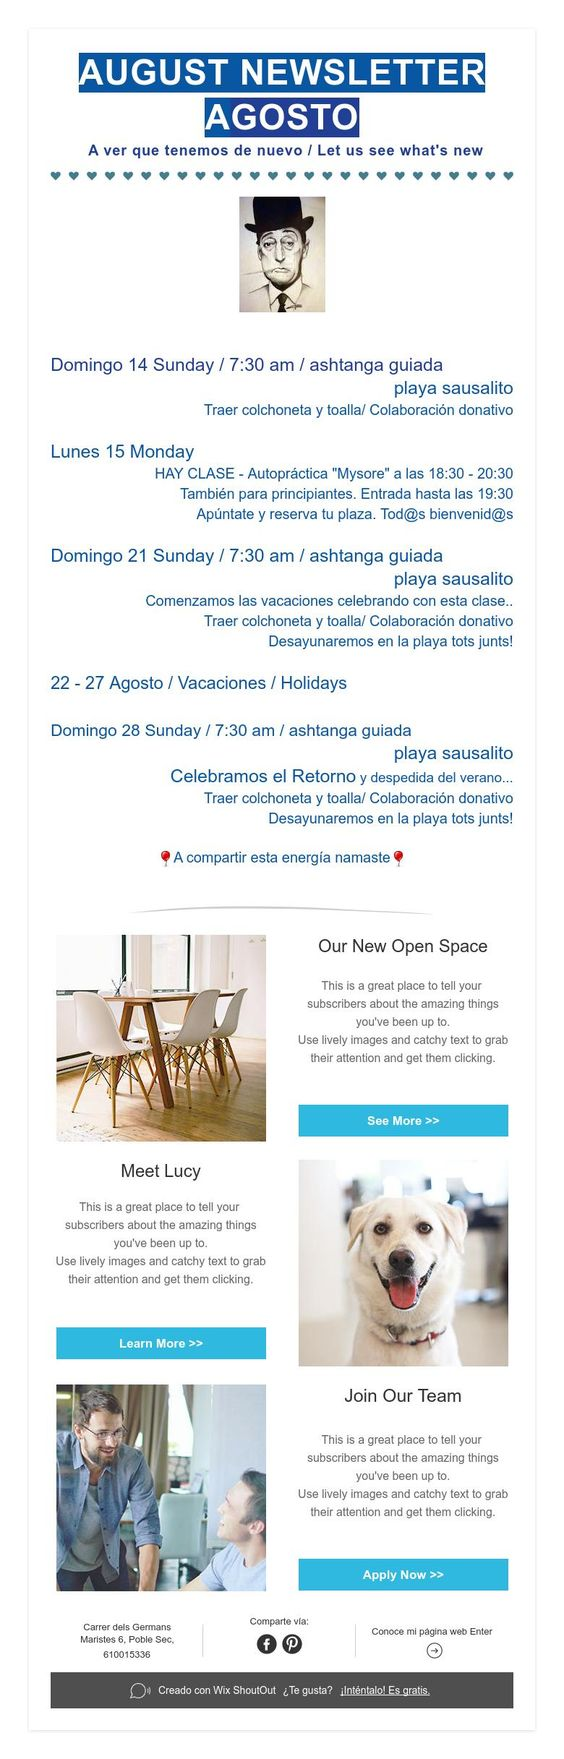 August Info.  A ver que tenemos de nuevo / Let us see what's new